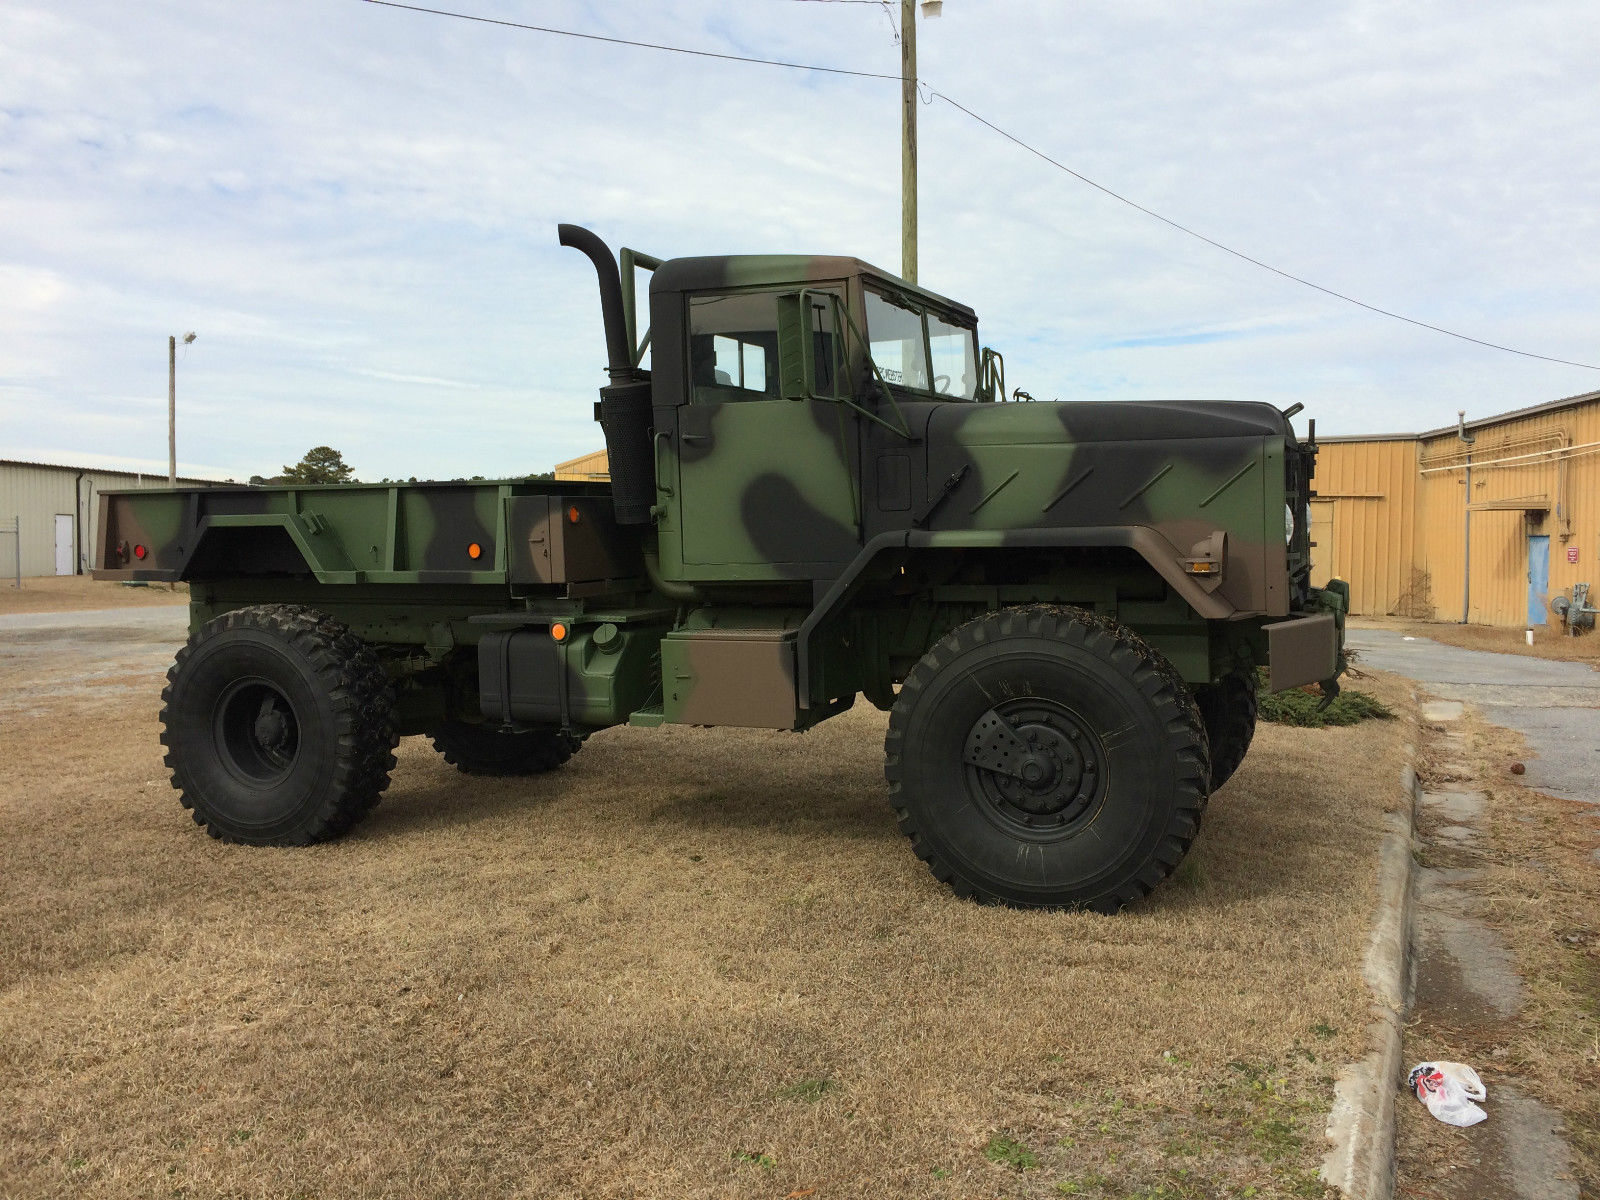 bobbed 1991 BMY M 931a2 military truck for sale